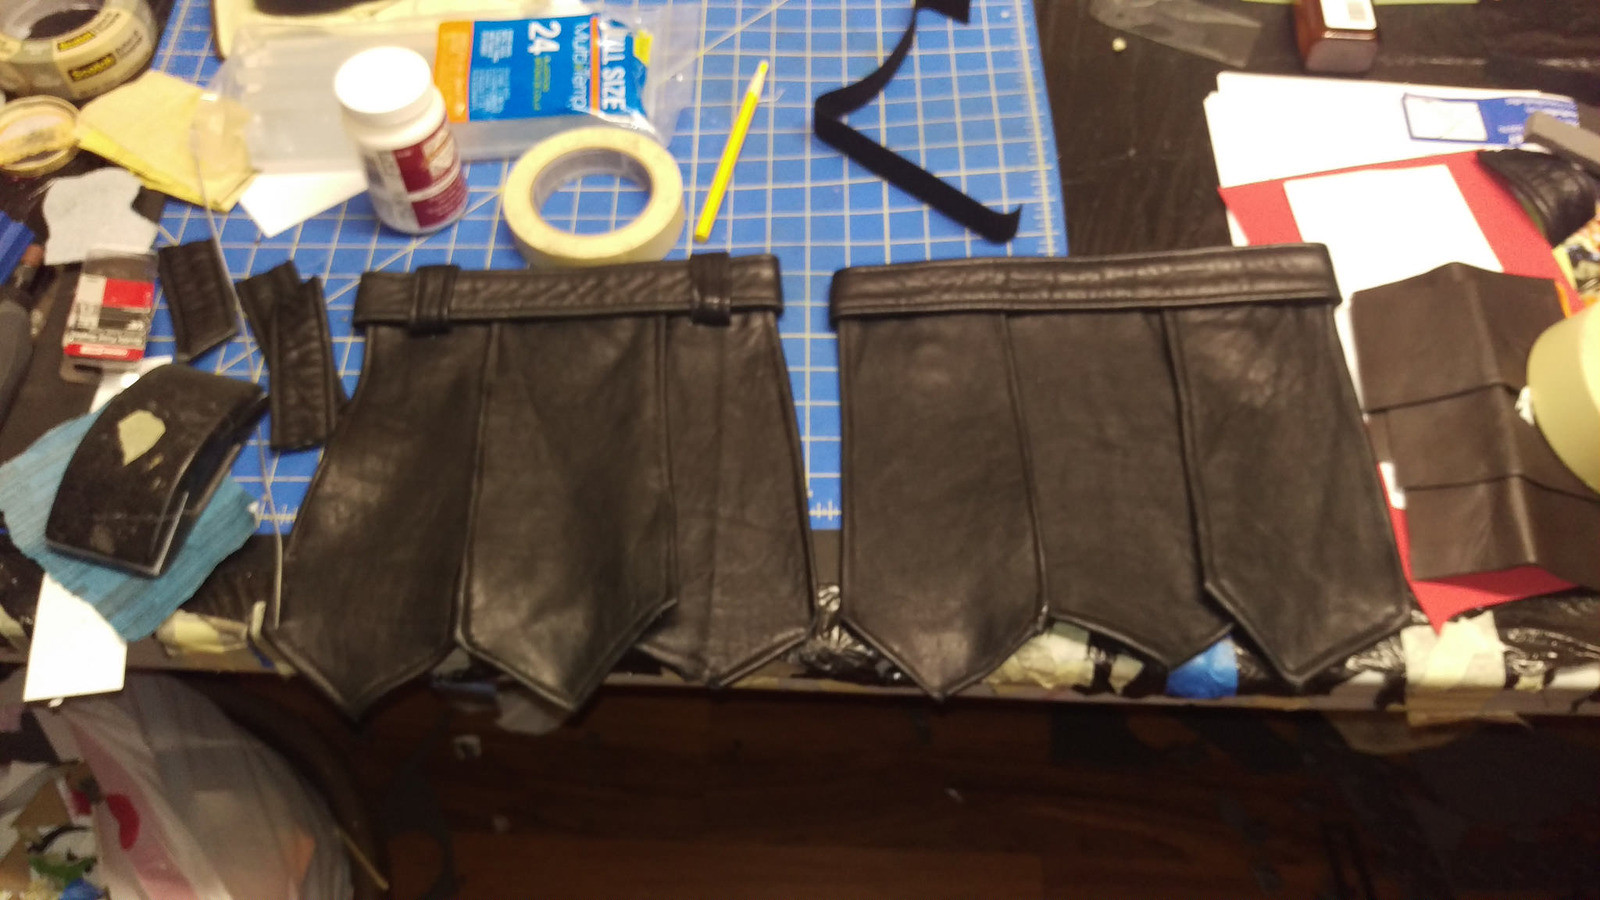 Made a Goodwill trip to gather old leather pieces (boots, jackets, handbags). They were dismantled, then made into the loincloth.